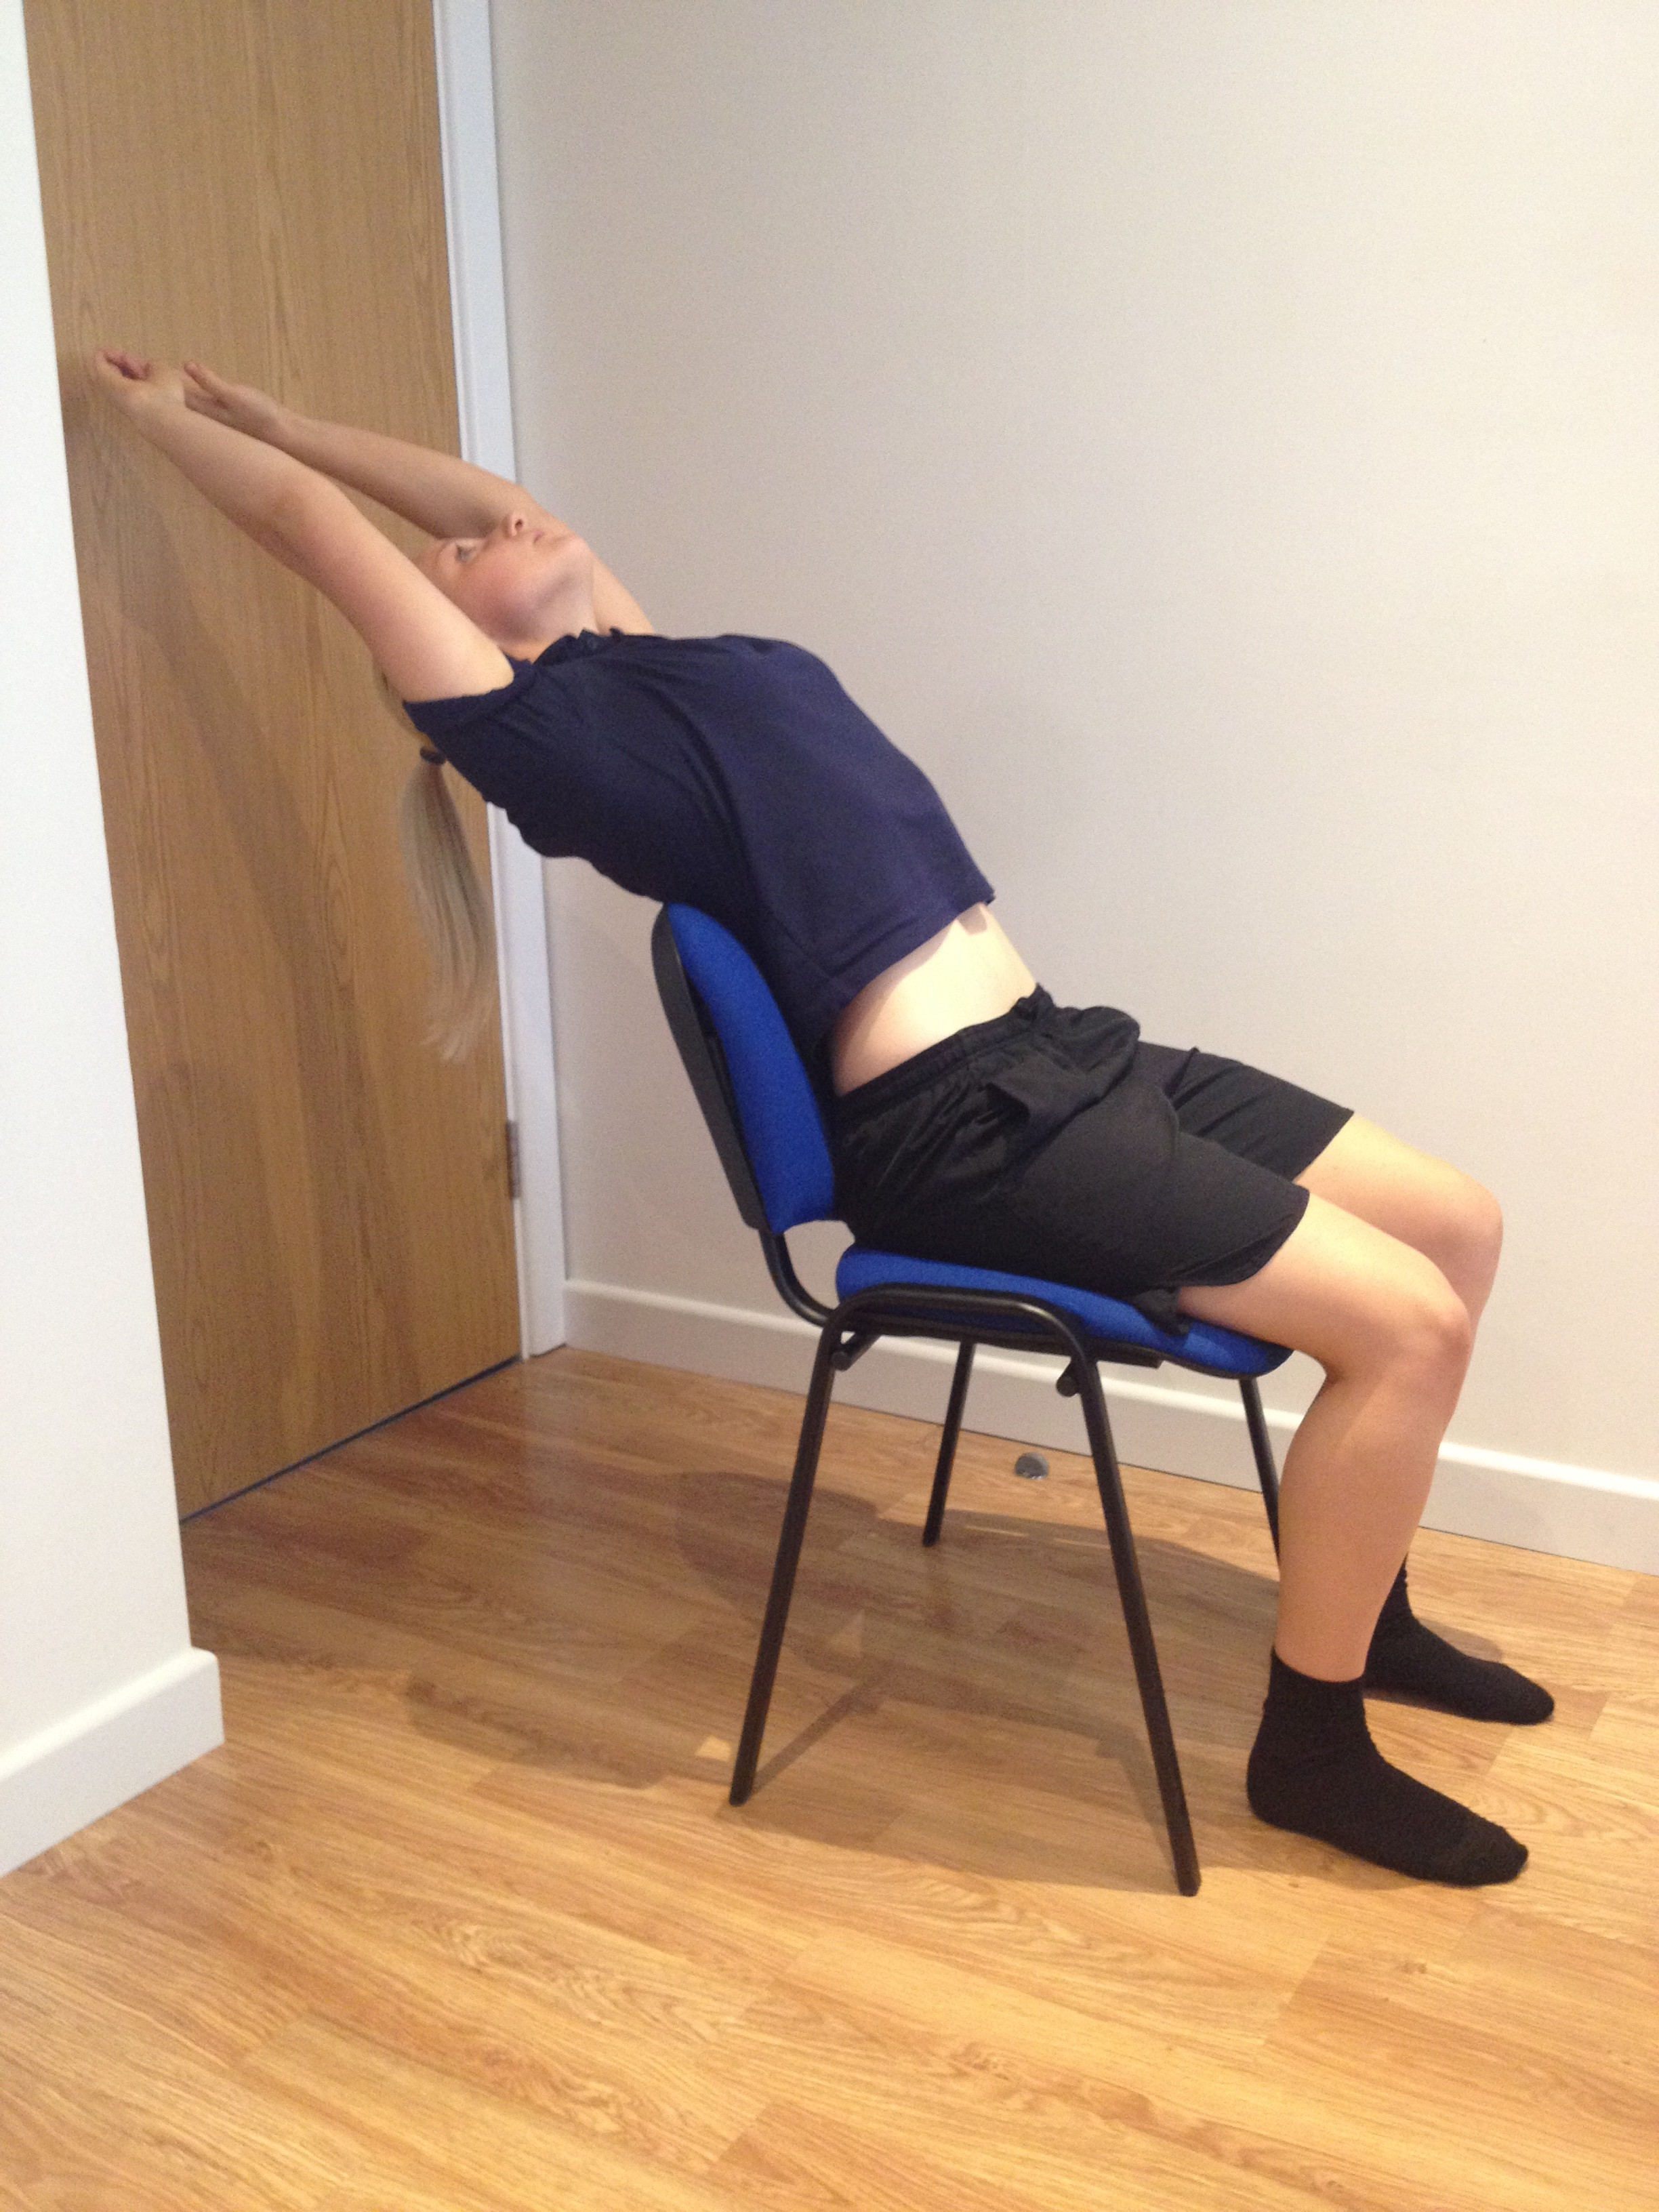 Thoracic Spine Extension Stretch Sitting G4